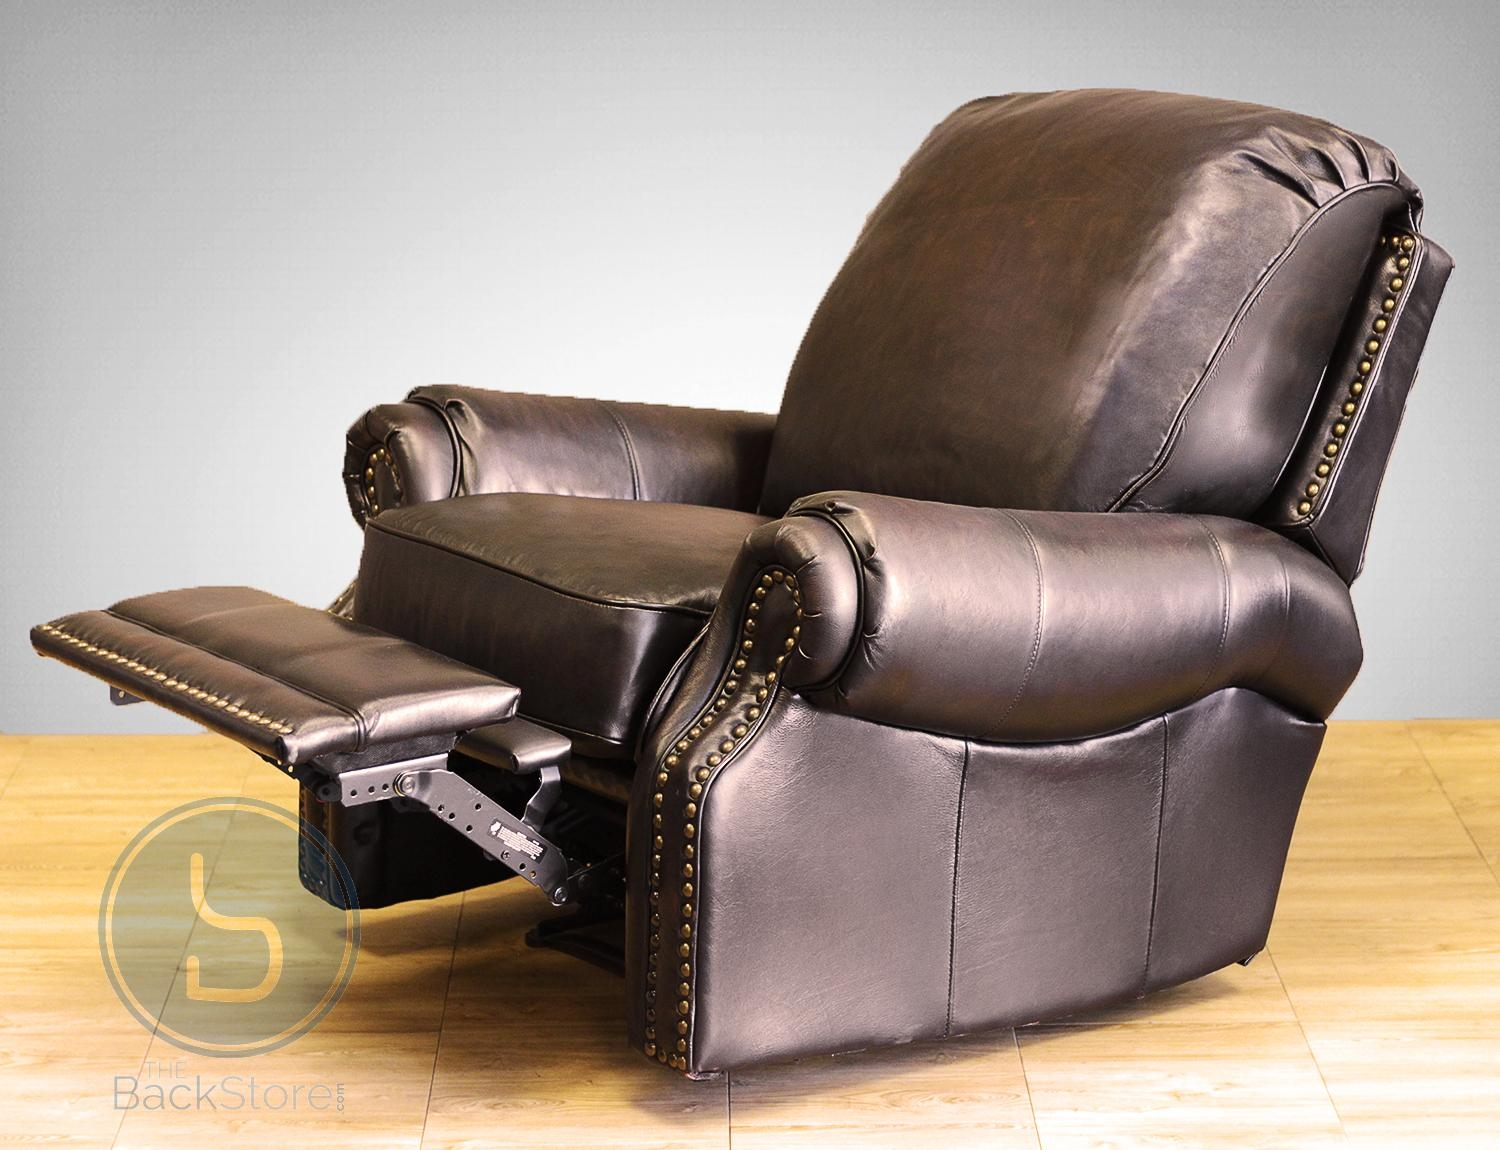 Barcalounger Premier Ii Leather Recliner Chair – Leather Recliner Inside Barcalounger Sofas (Photo 2 of 20)